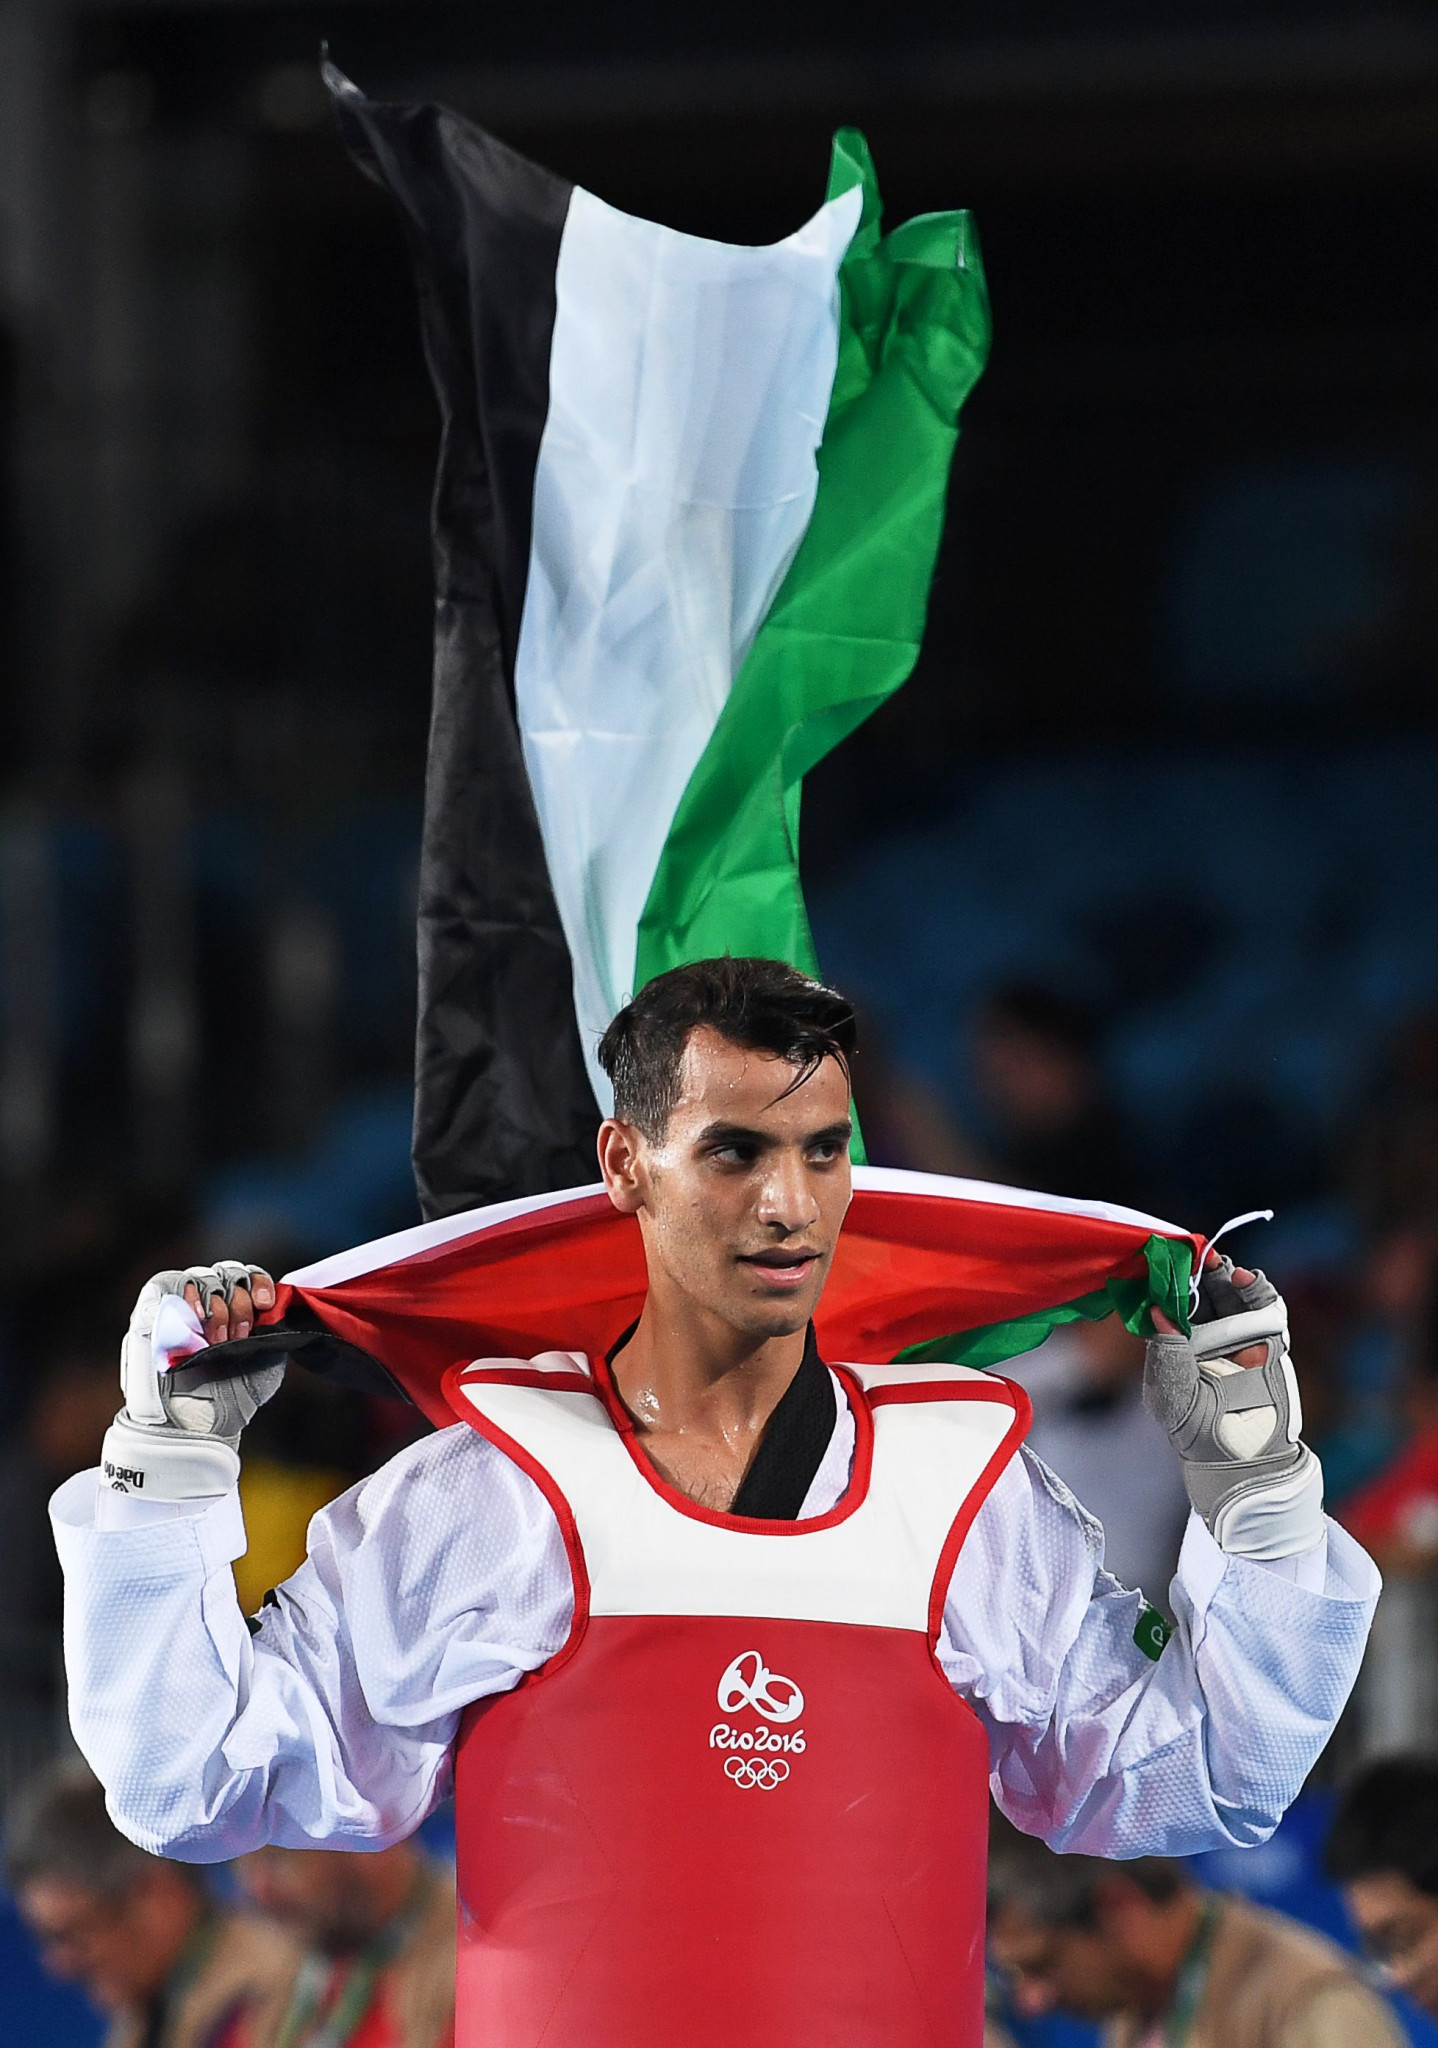 Ahmad Abughaush won Jordan's first Olympic gold medal at Rio 2016 ©Getty Images